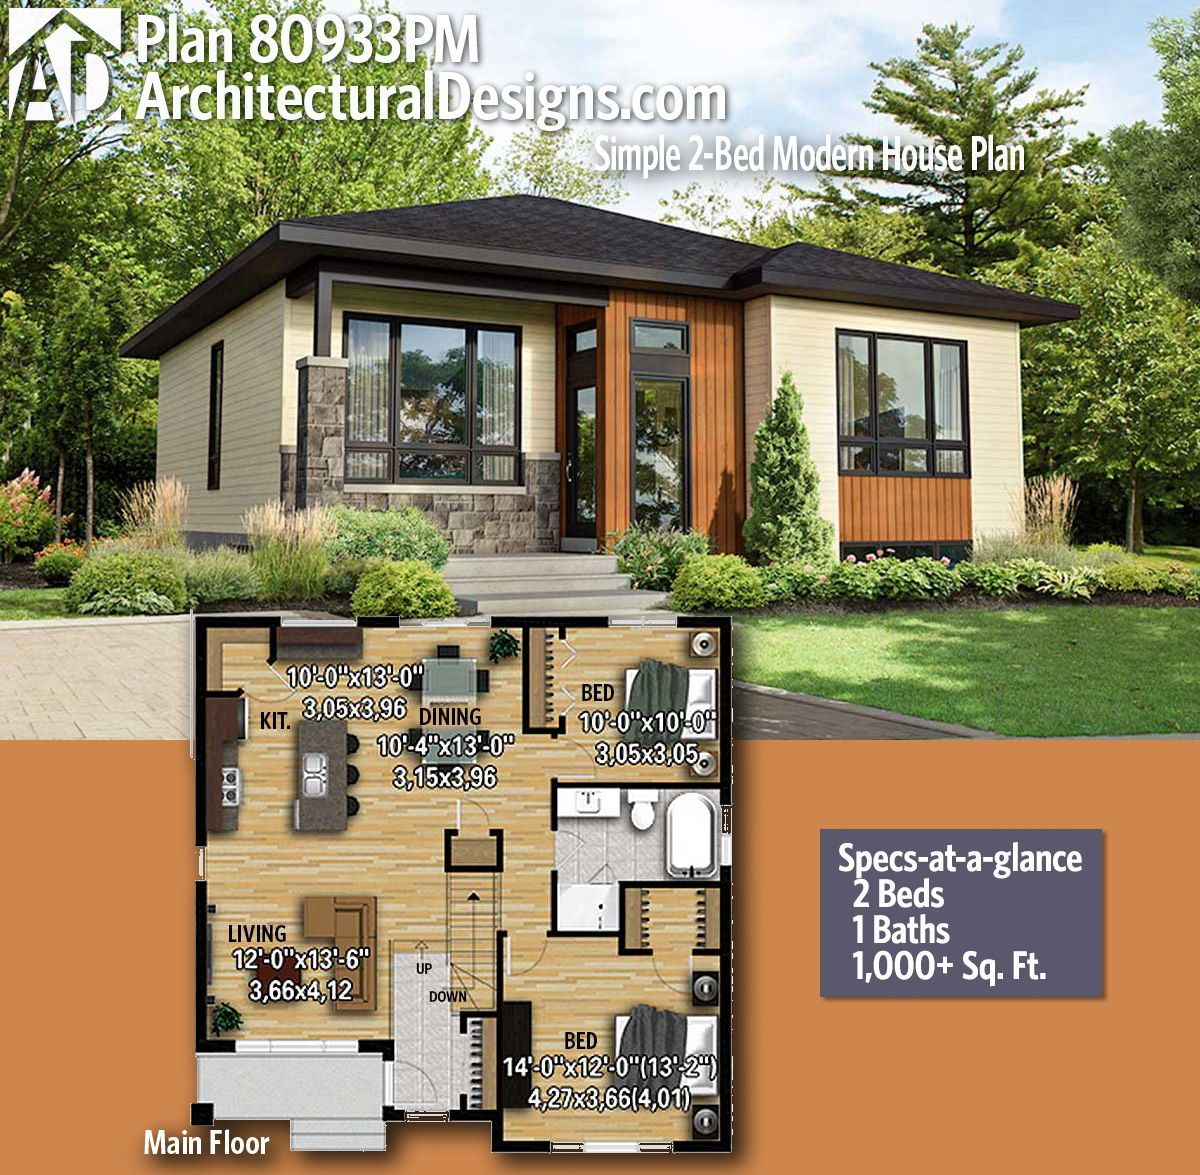 Plan 80933pm Simple 2 Bed Modern House Plan Modern House Plans